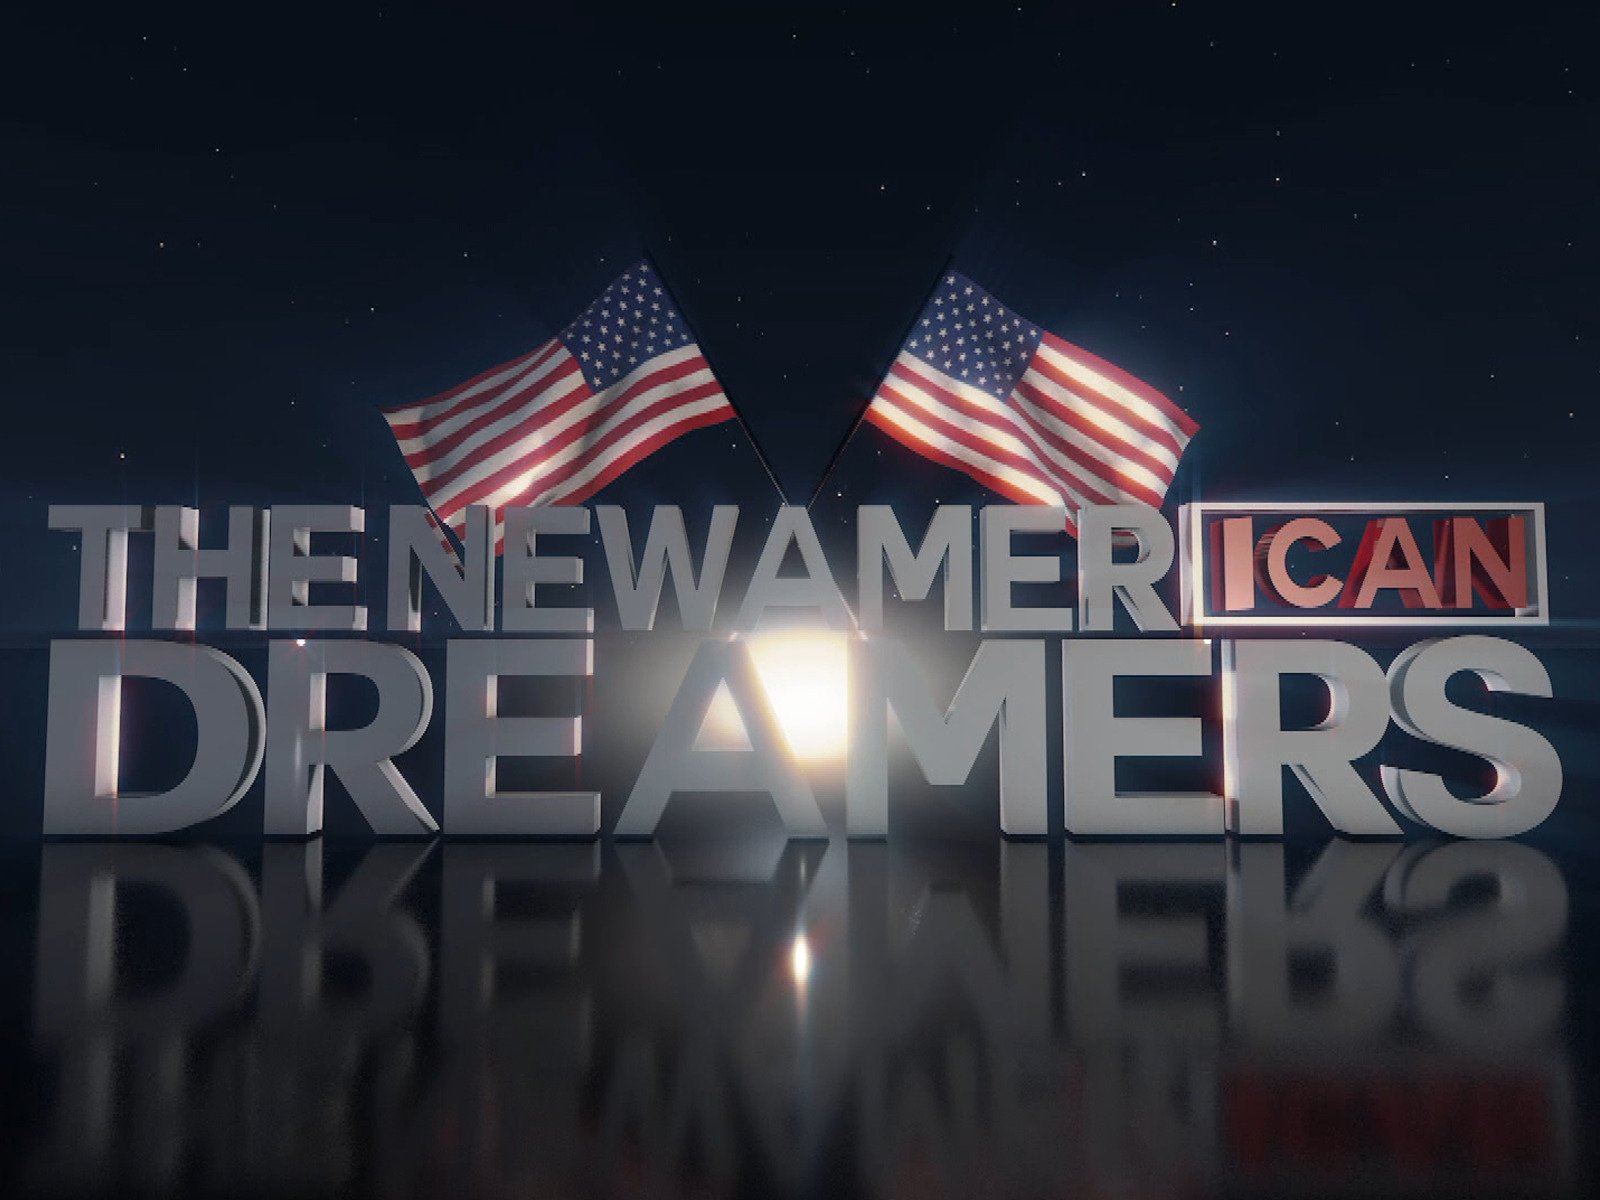 The New American Dreamers - Season 1